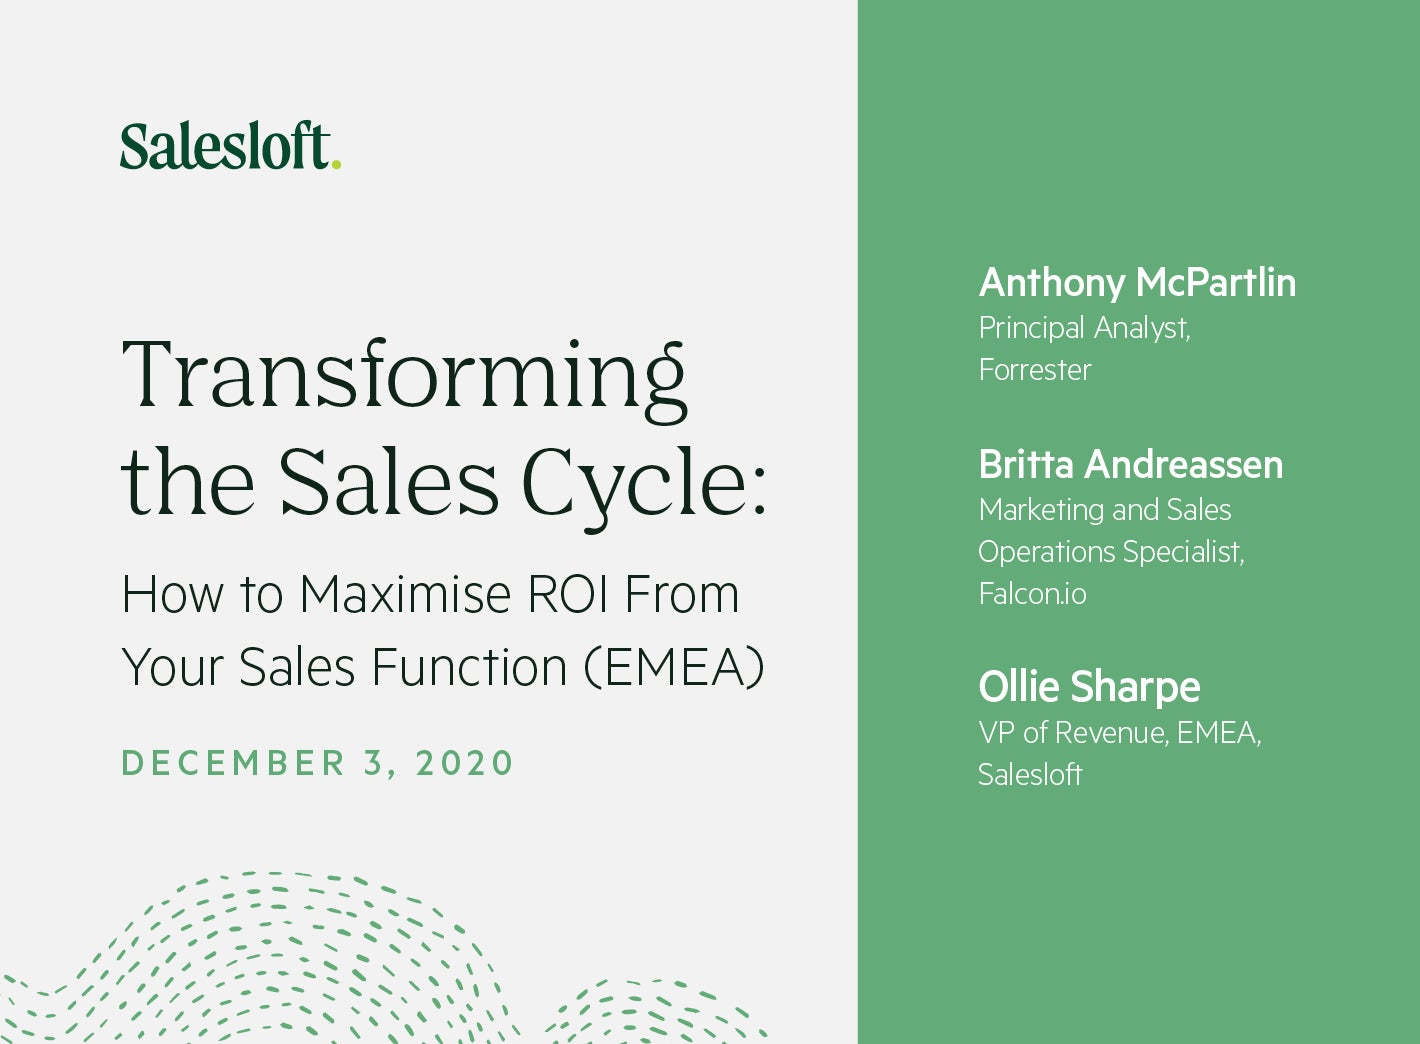 Transforming the Sales Cycle: How to Maximise ROI From Your Sales Function (EMEA)